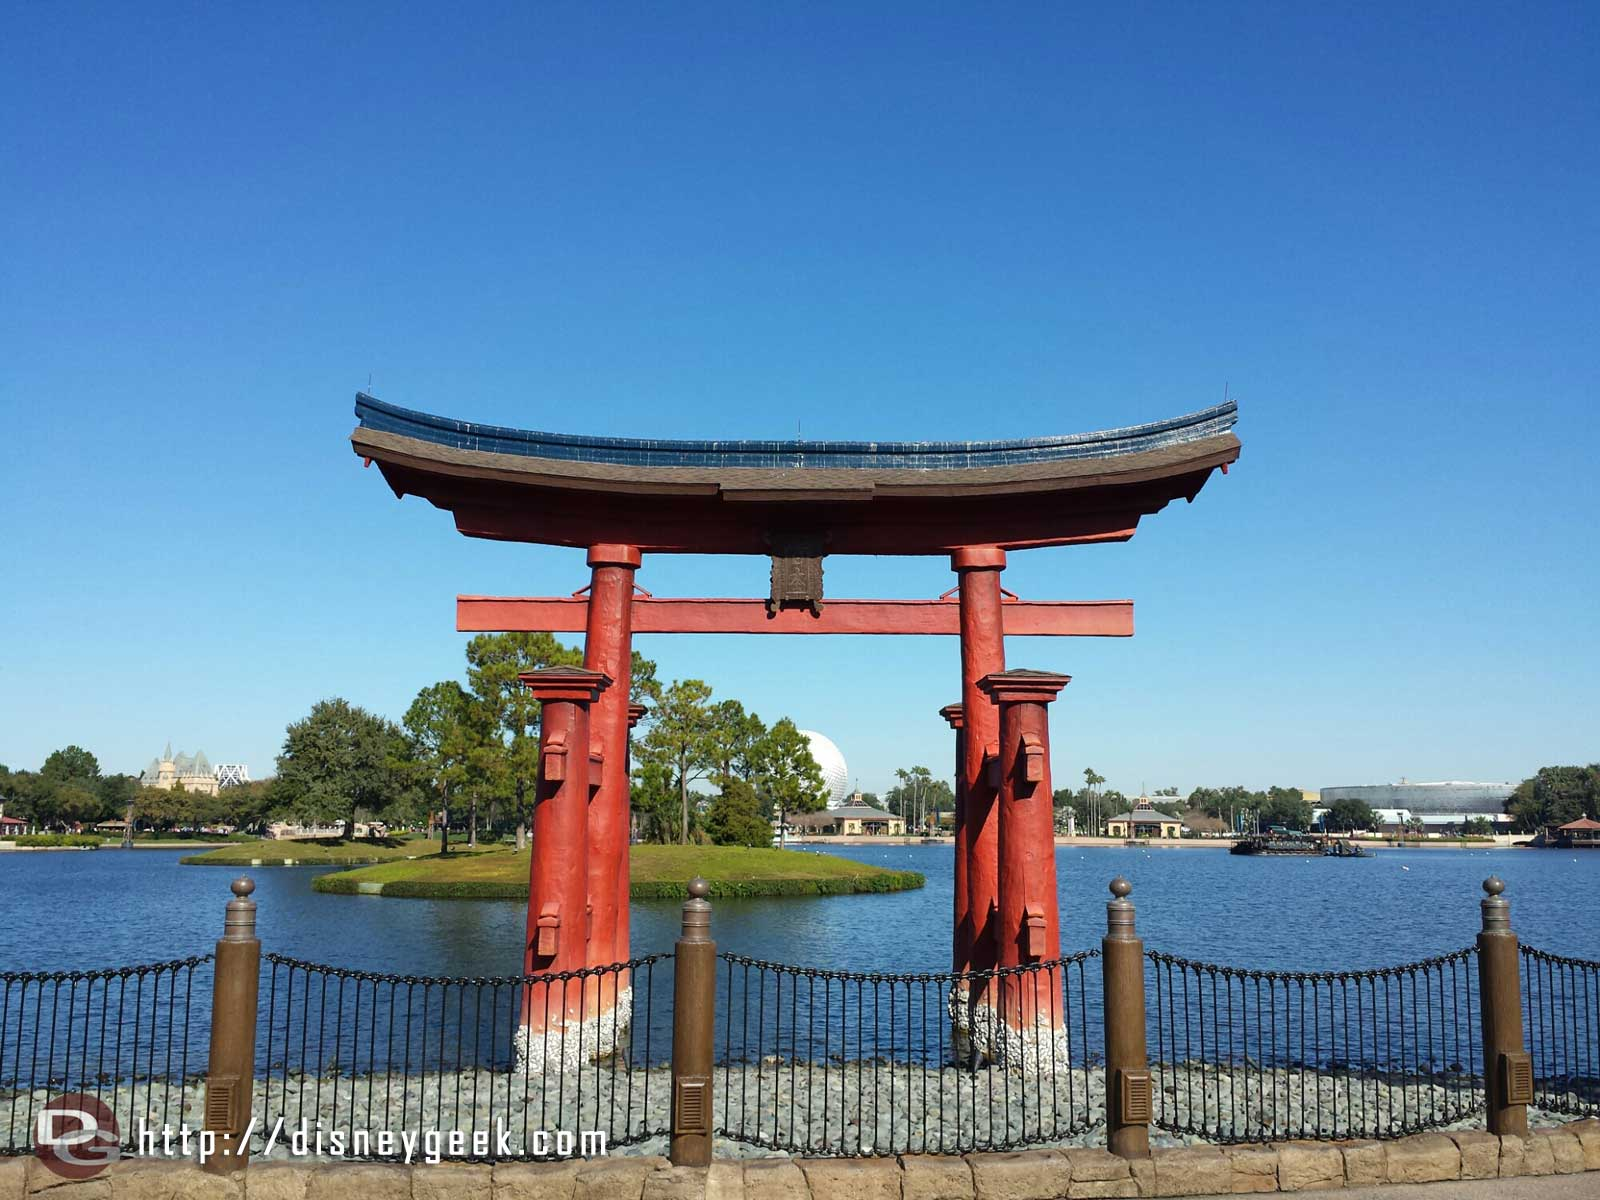 Passing the torii in Japan #Epcot